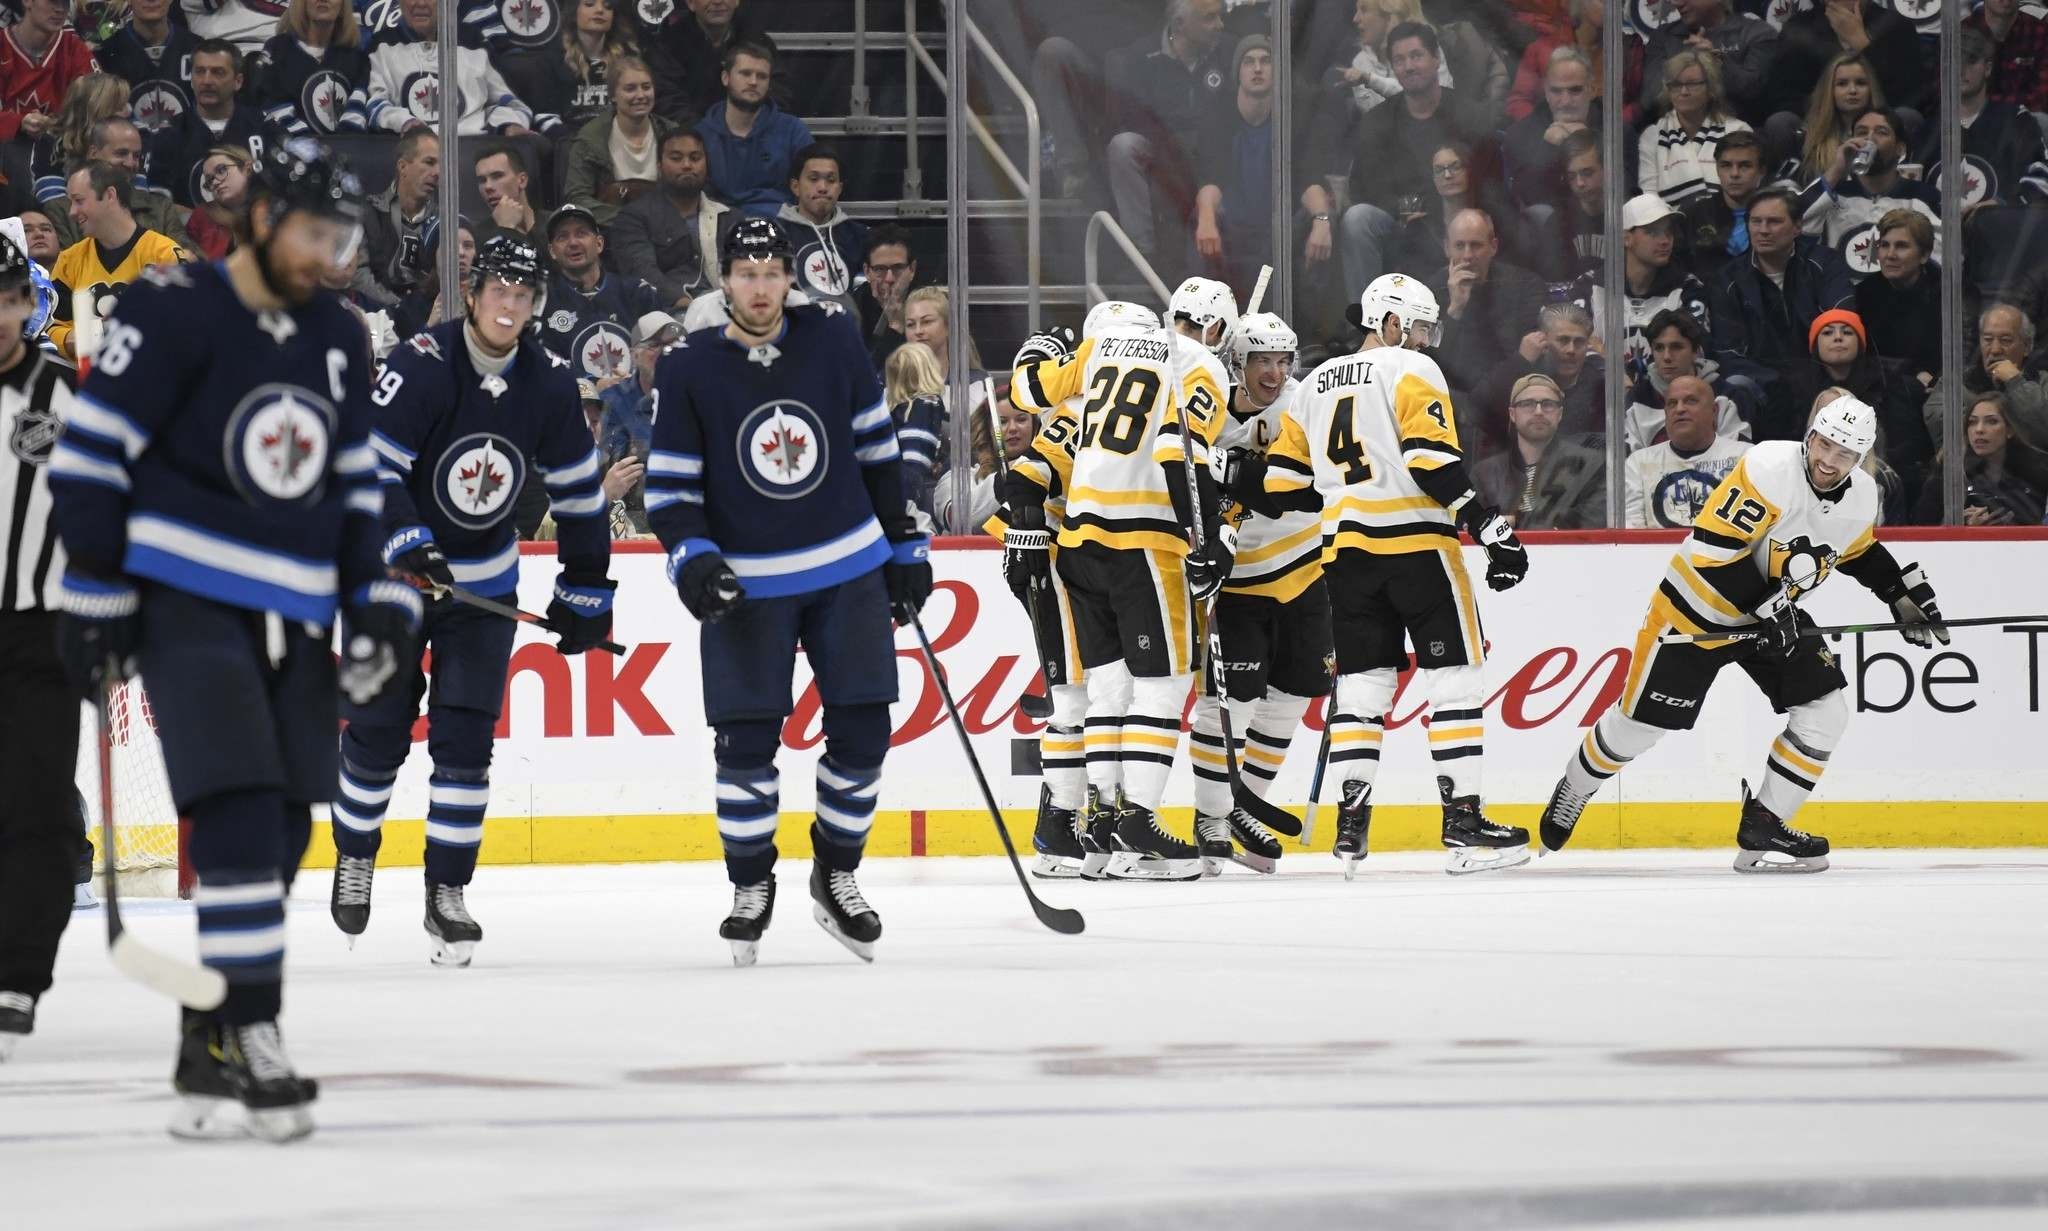 Mark Scheifele, Blake Wheeler, Patrik Laine, Kyle Connor, Nikolaj Ehlers and Josh Morrissey were a combined minus-18 against the Penguins on Sunday. (Fred Greenslade / The Canadian Press)</p>